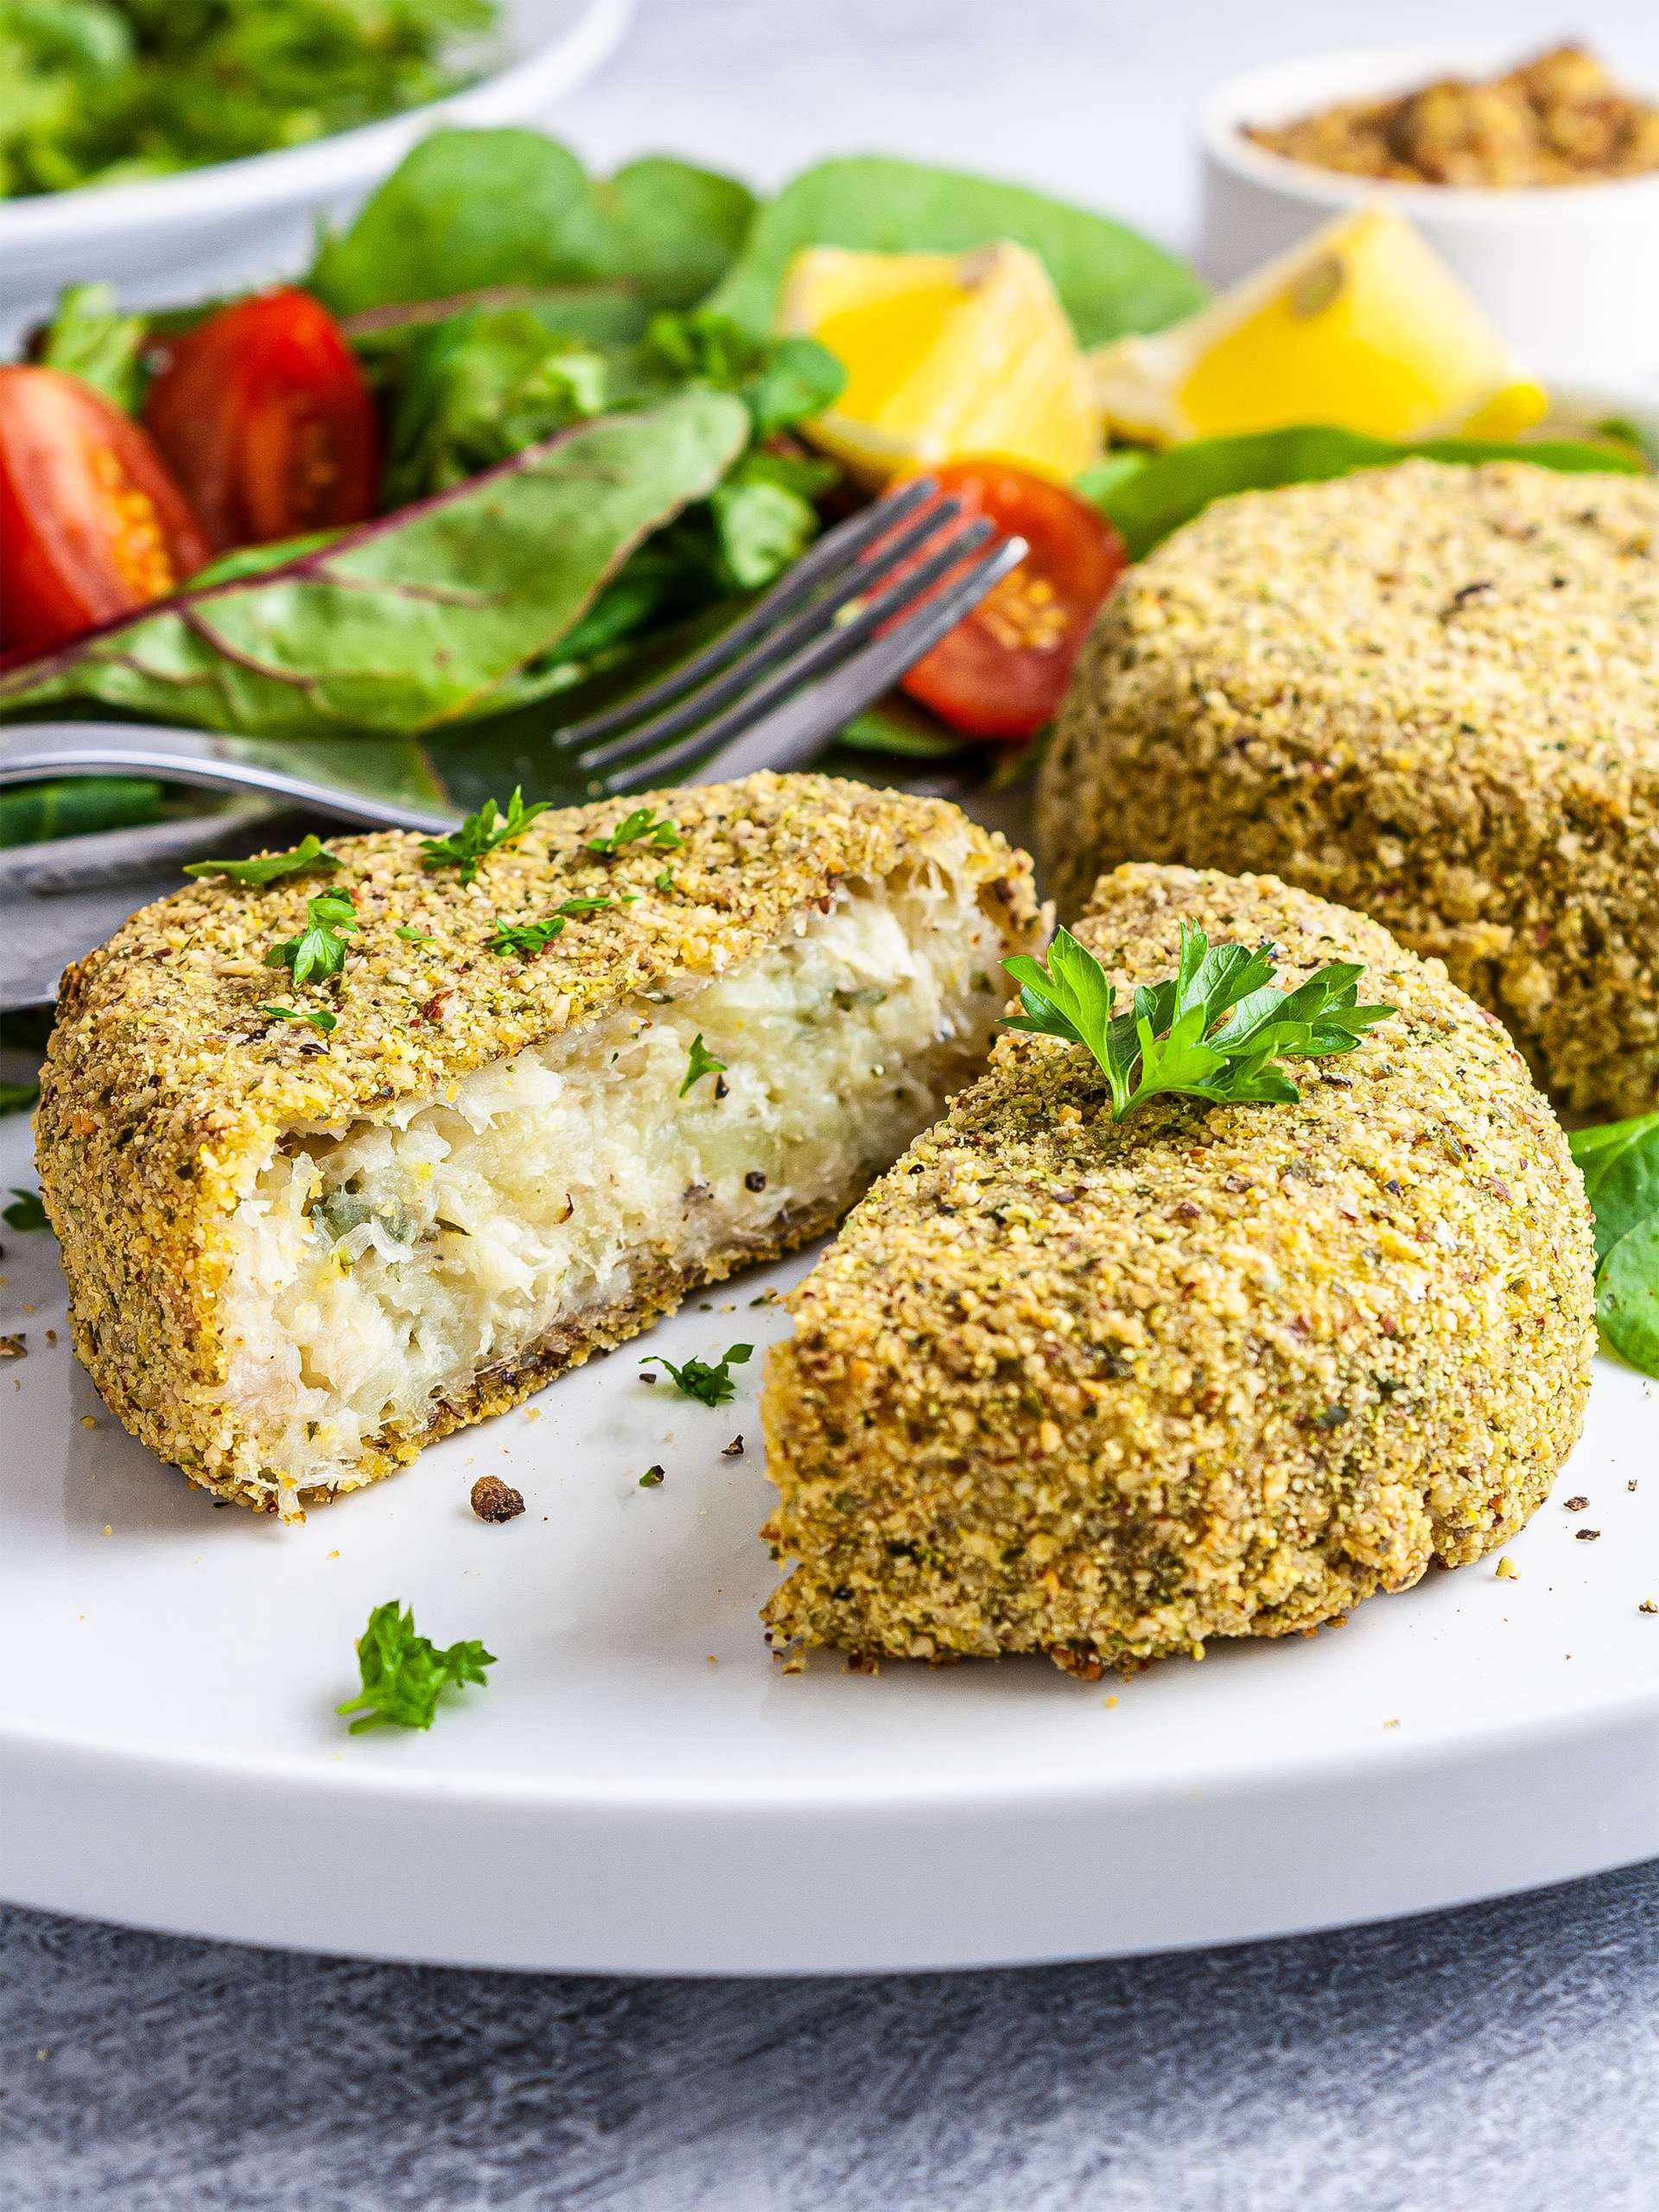 Gluten-Free Oven-Baked Fish Cakes Recipe Thumbnail